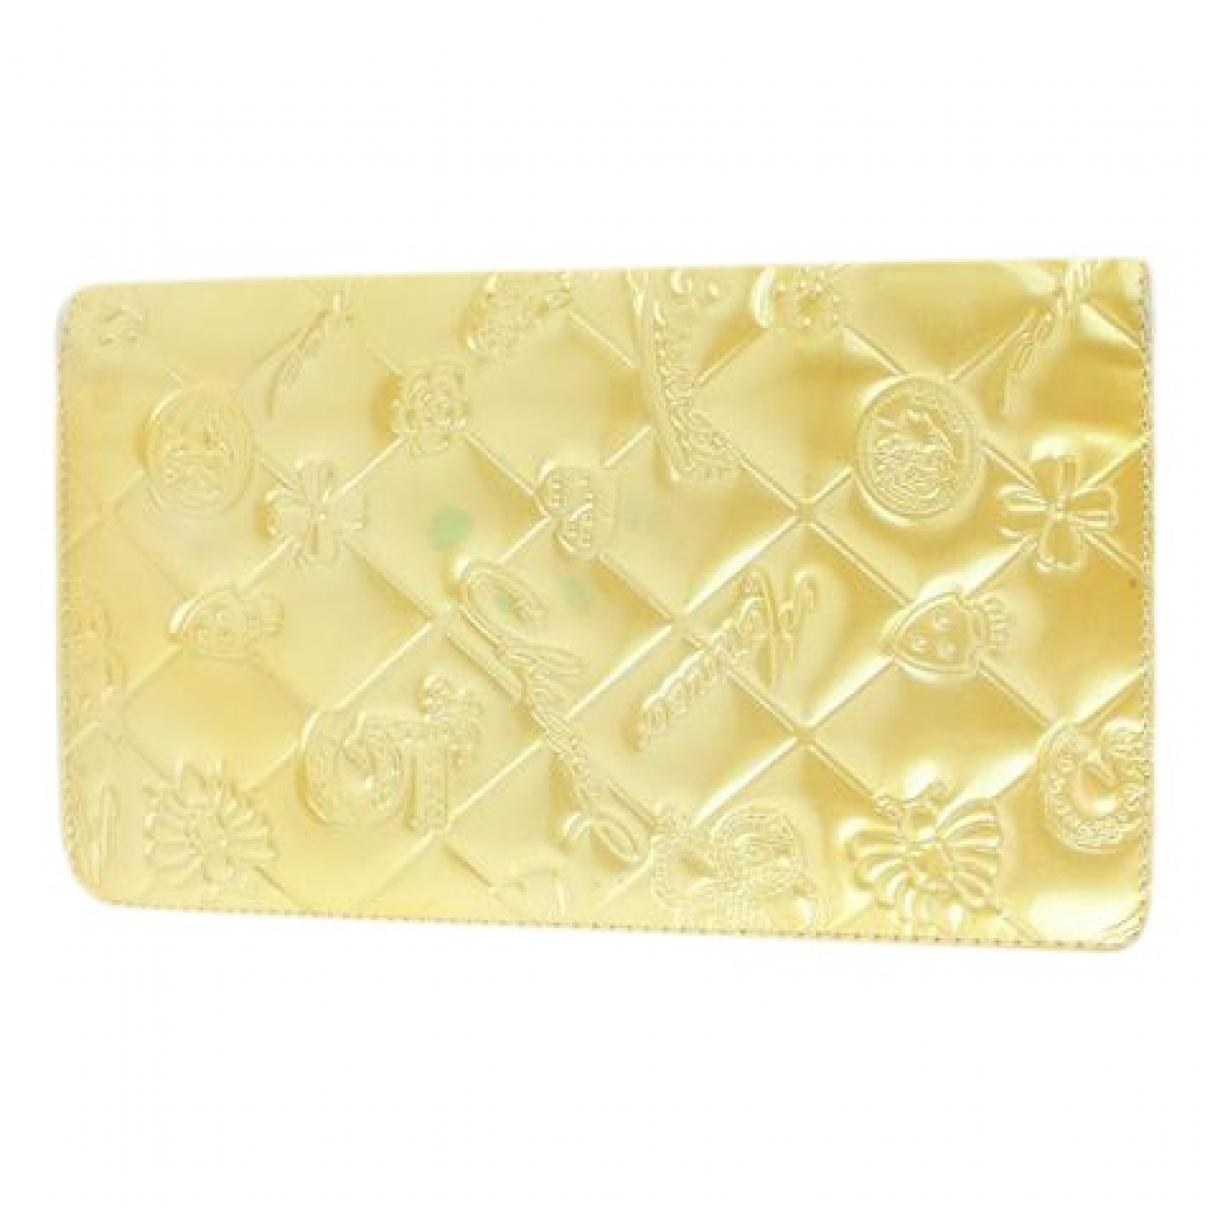 8d616bbd30 Chanel - Yellow Patent Leather Clutch Bag - Lyst. View fullscreen